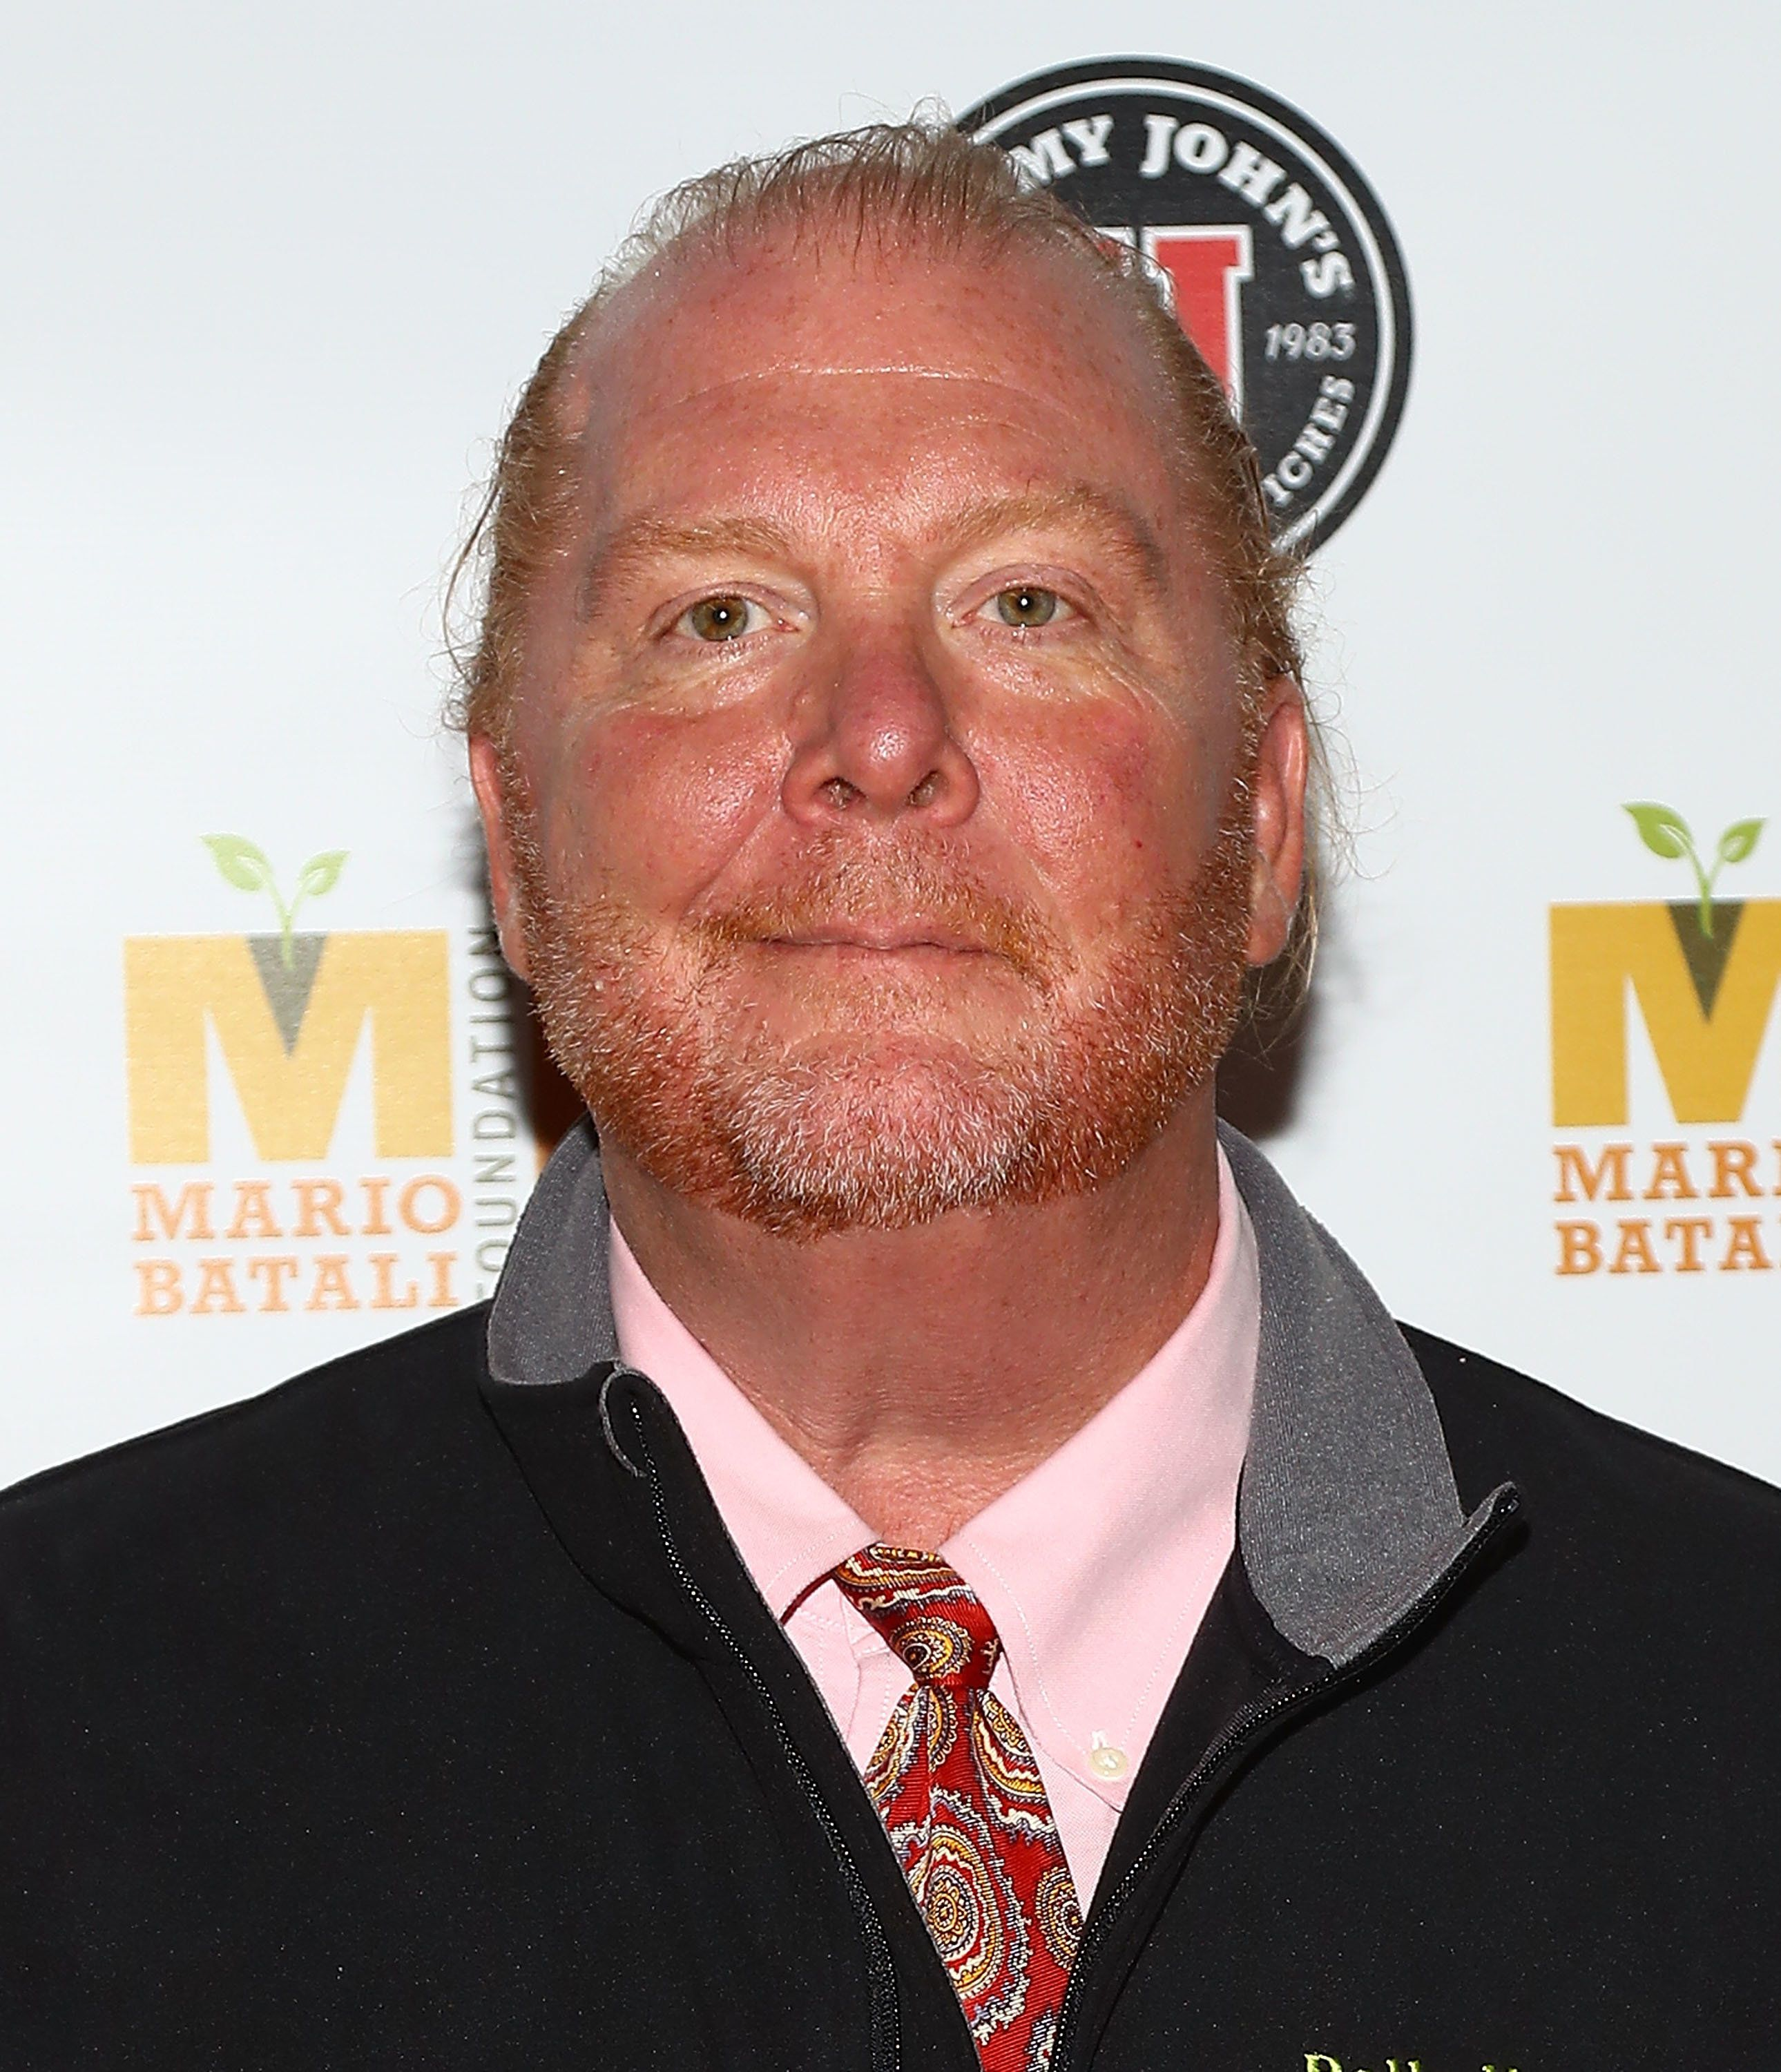 World-Famous Chef And Restaurateur Mario Batali Under Criminal Investigation For Sexual Misconduct: